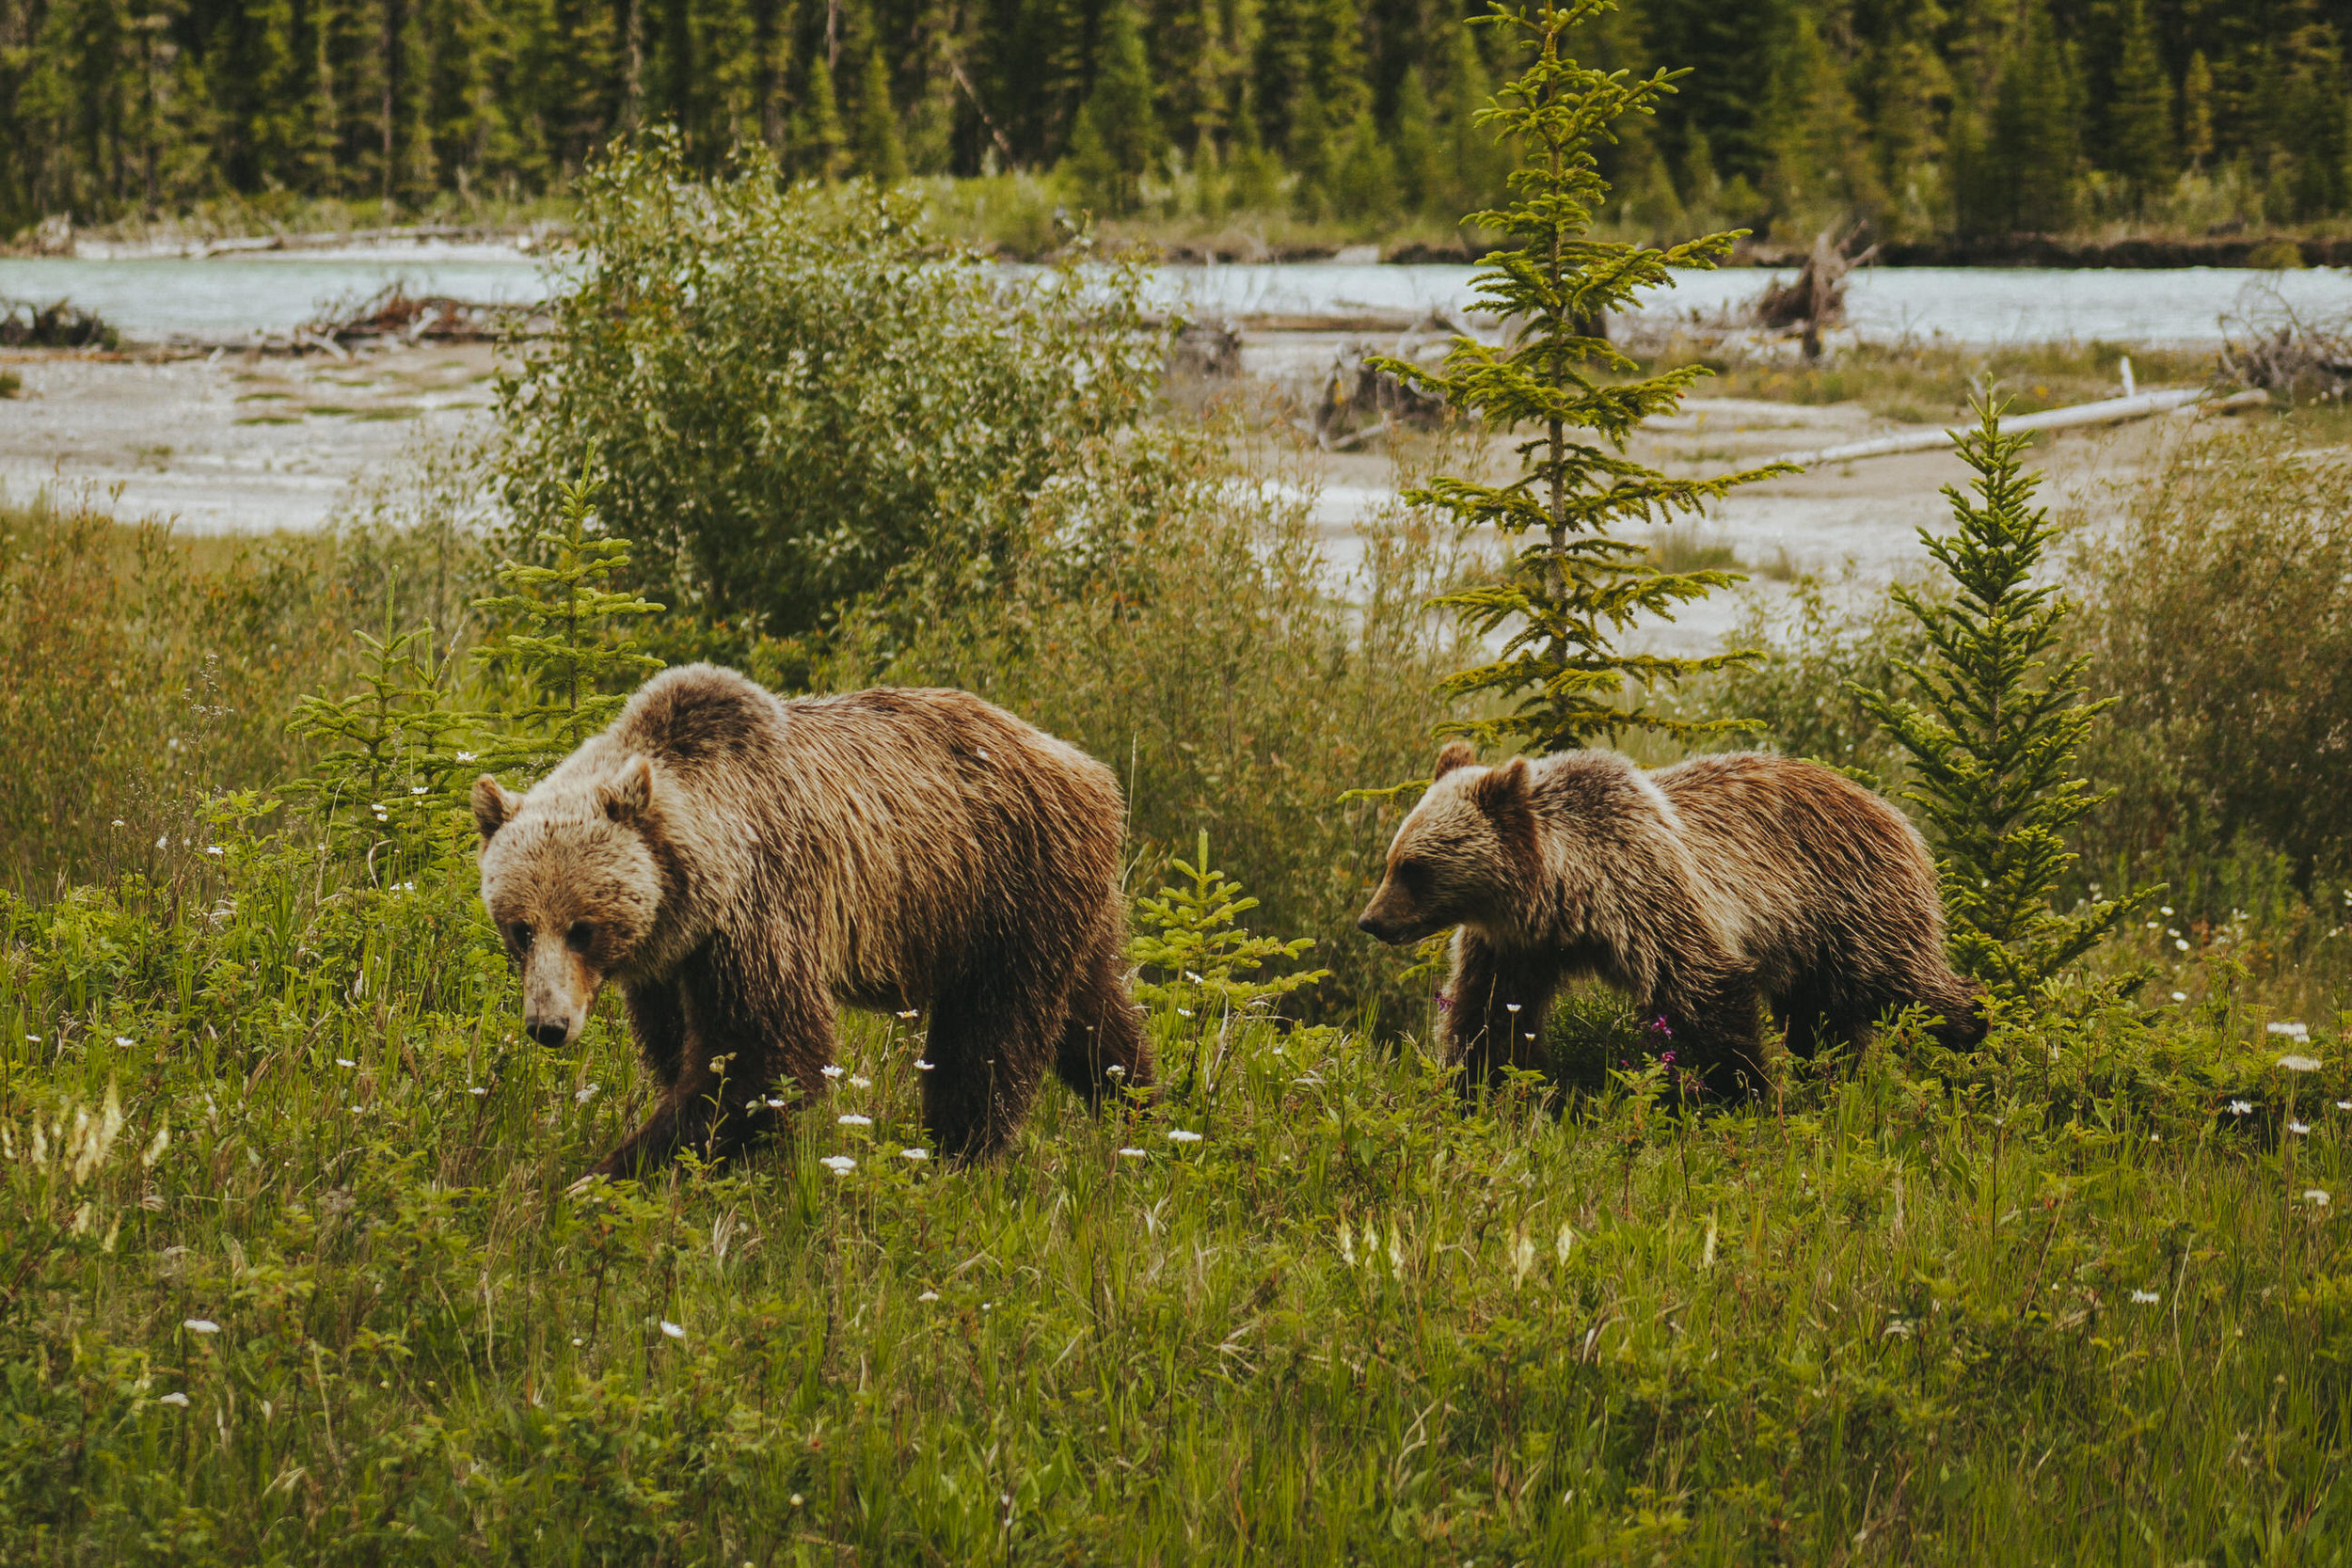 Wild Grizzlies Roaming the Canadian Rockies